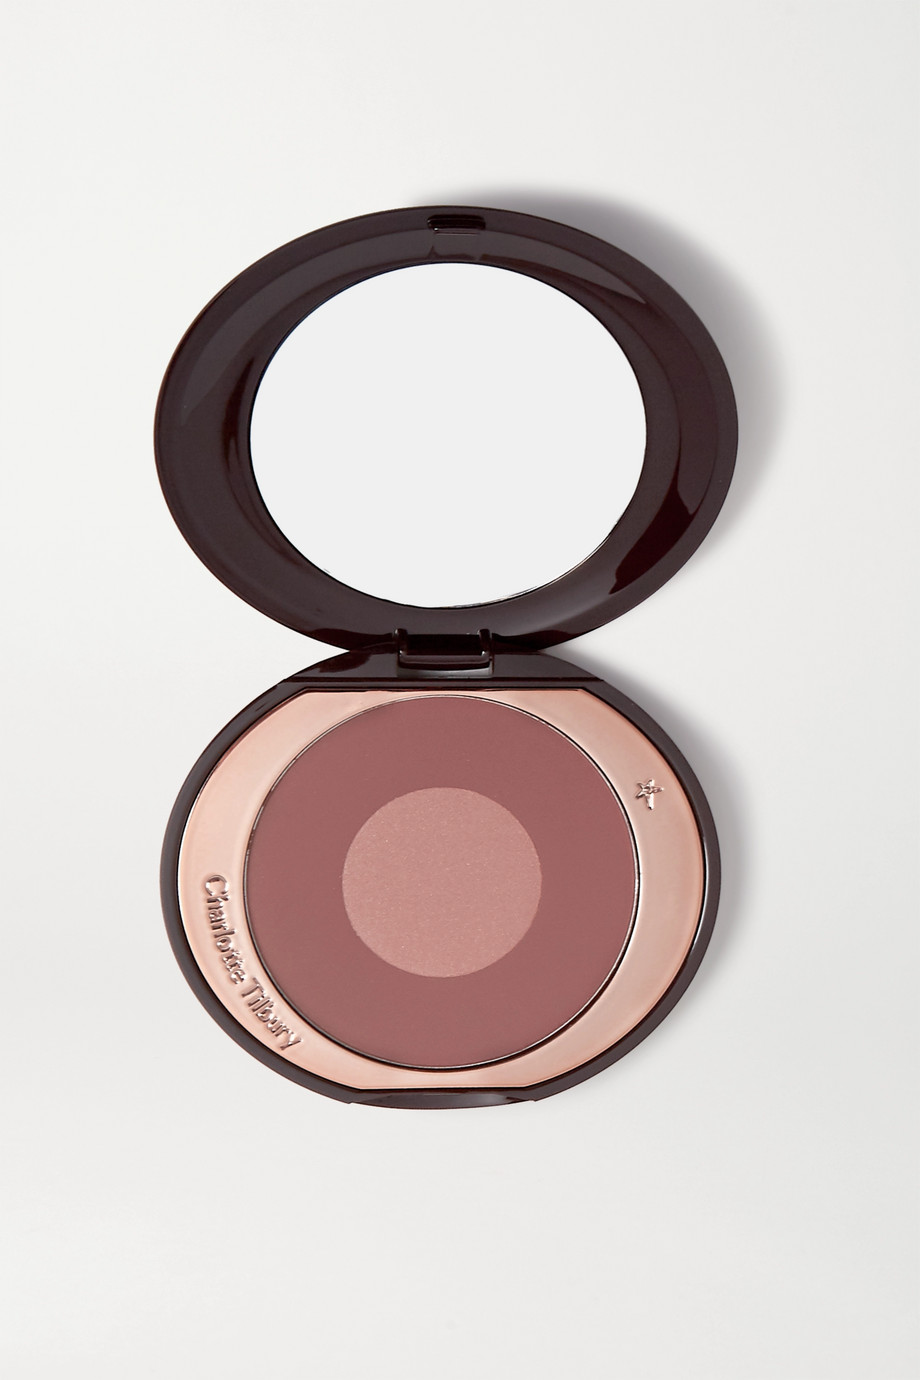 Charlotte Tilbury Cheek To Chic Swish & Glow Blusher – Pillow Talk Intense – Rouge